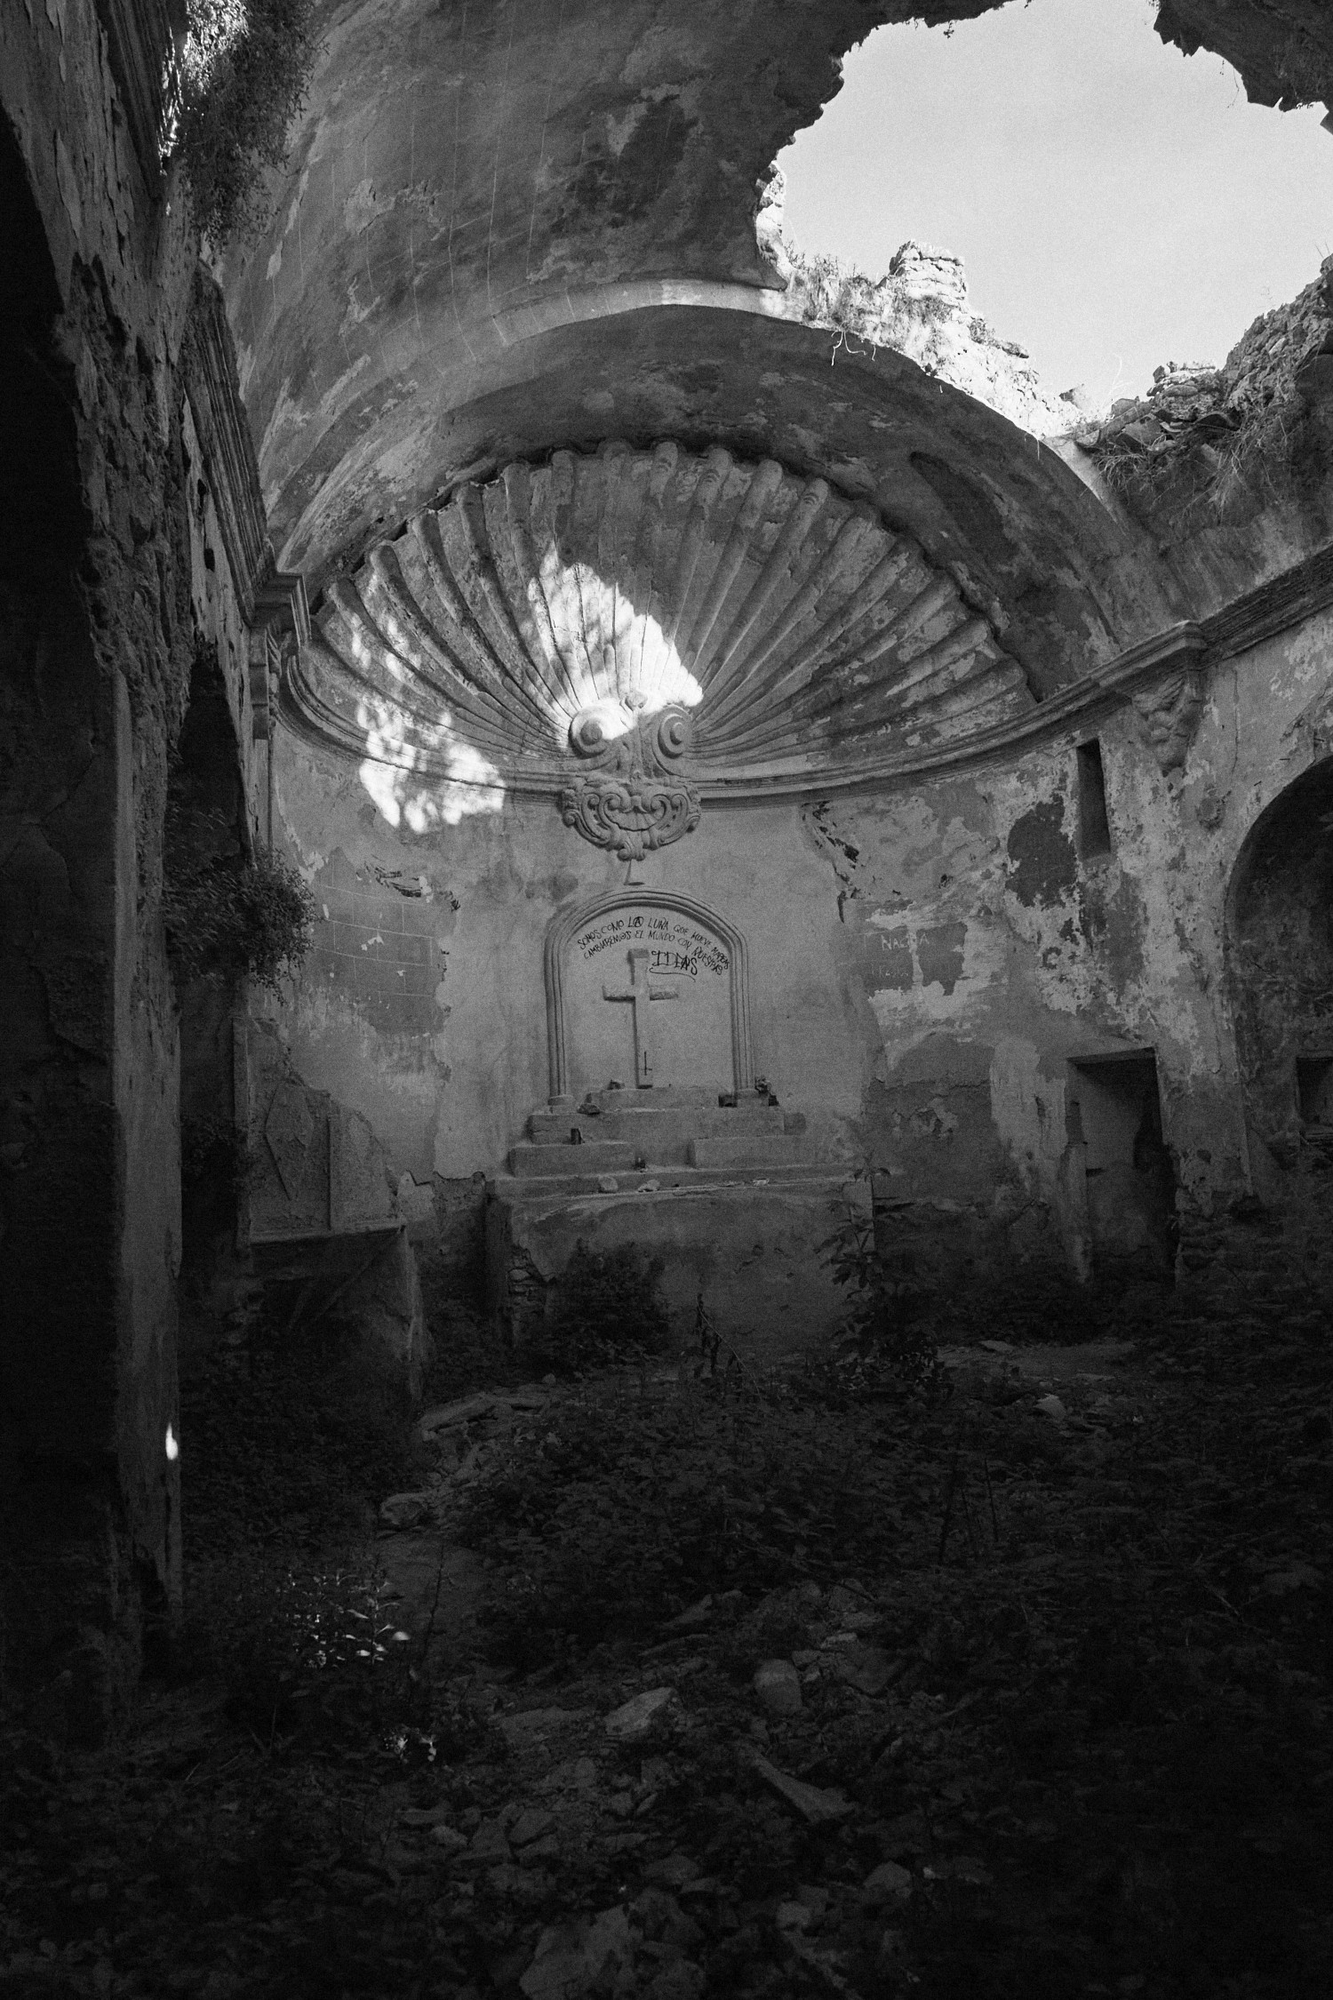 An abandon church with a hole in its roof. The altar has a cross and a shell shape.